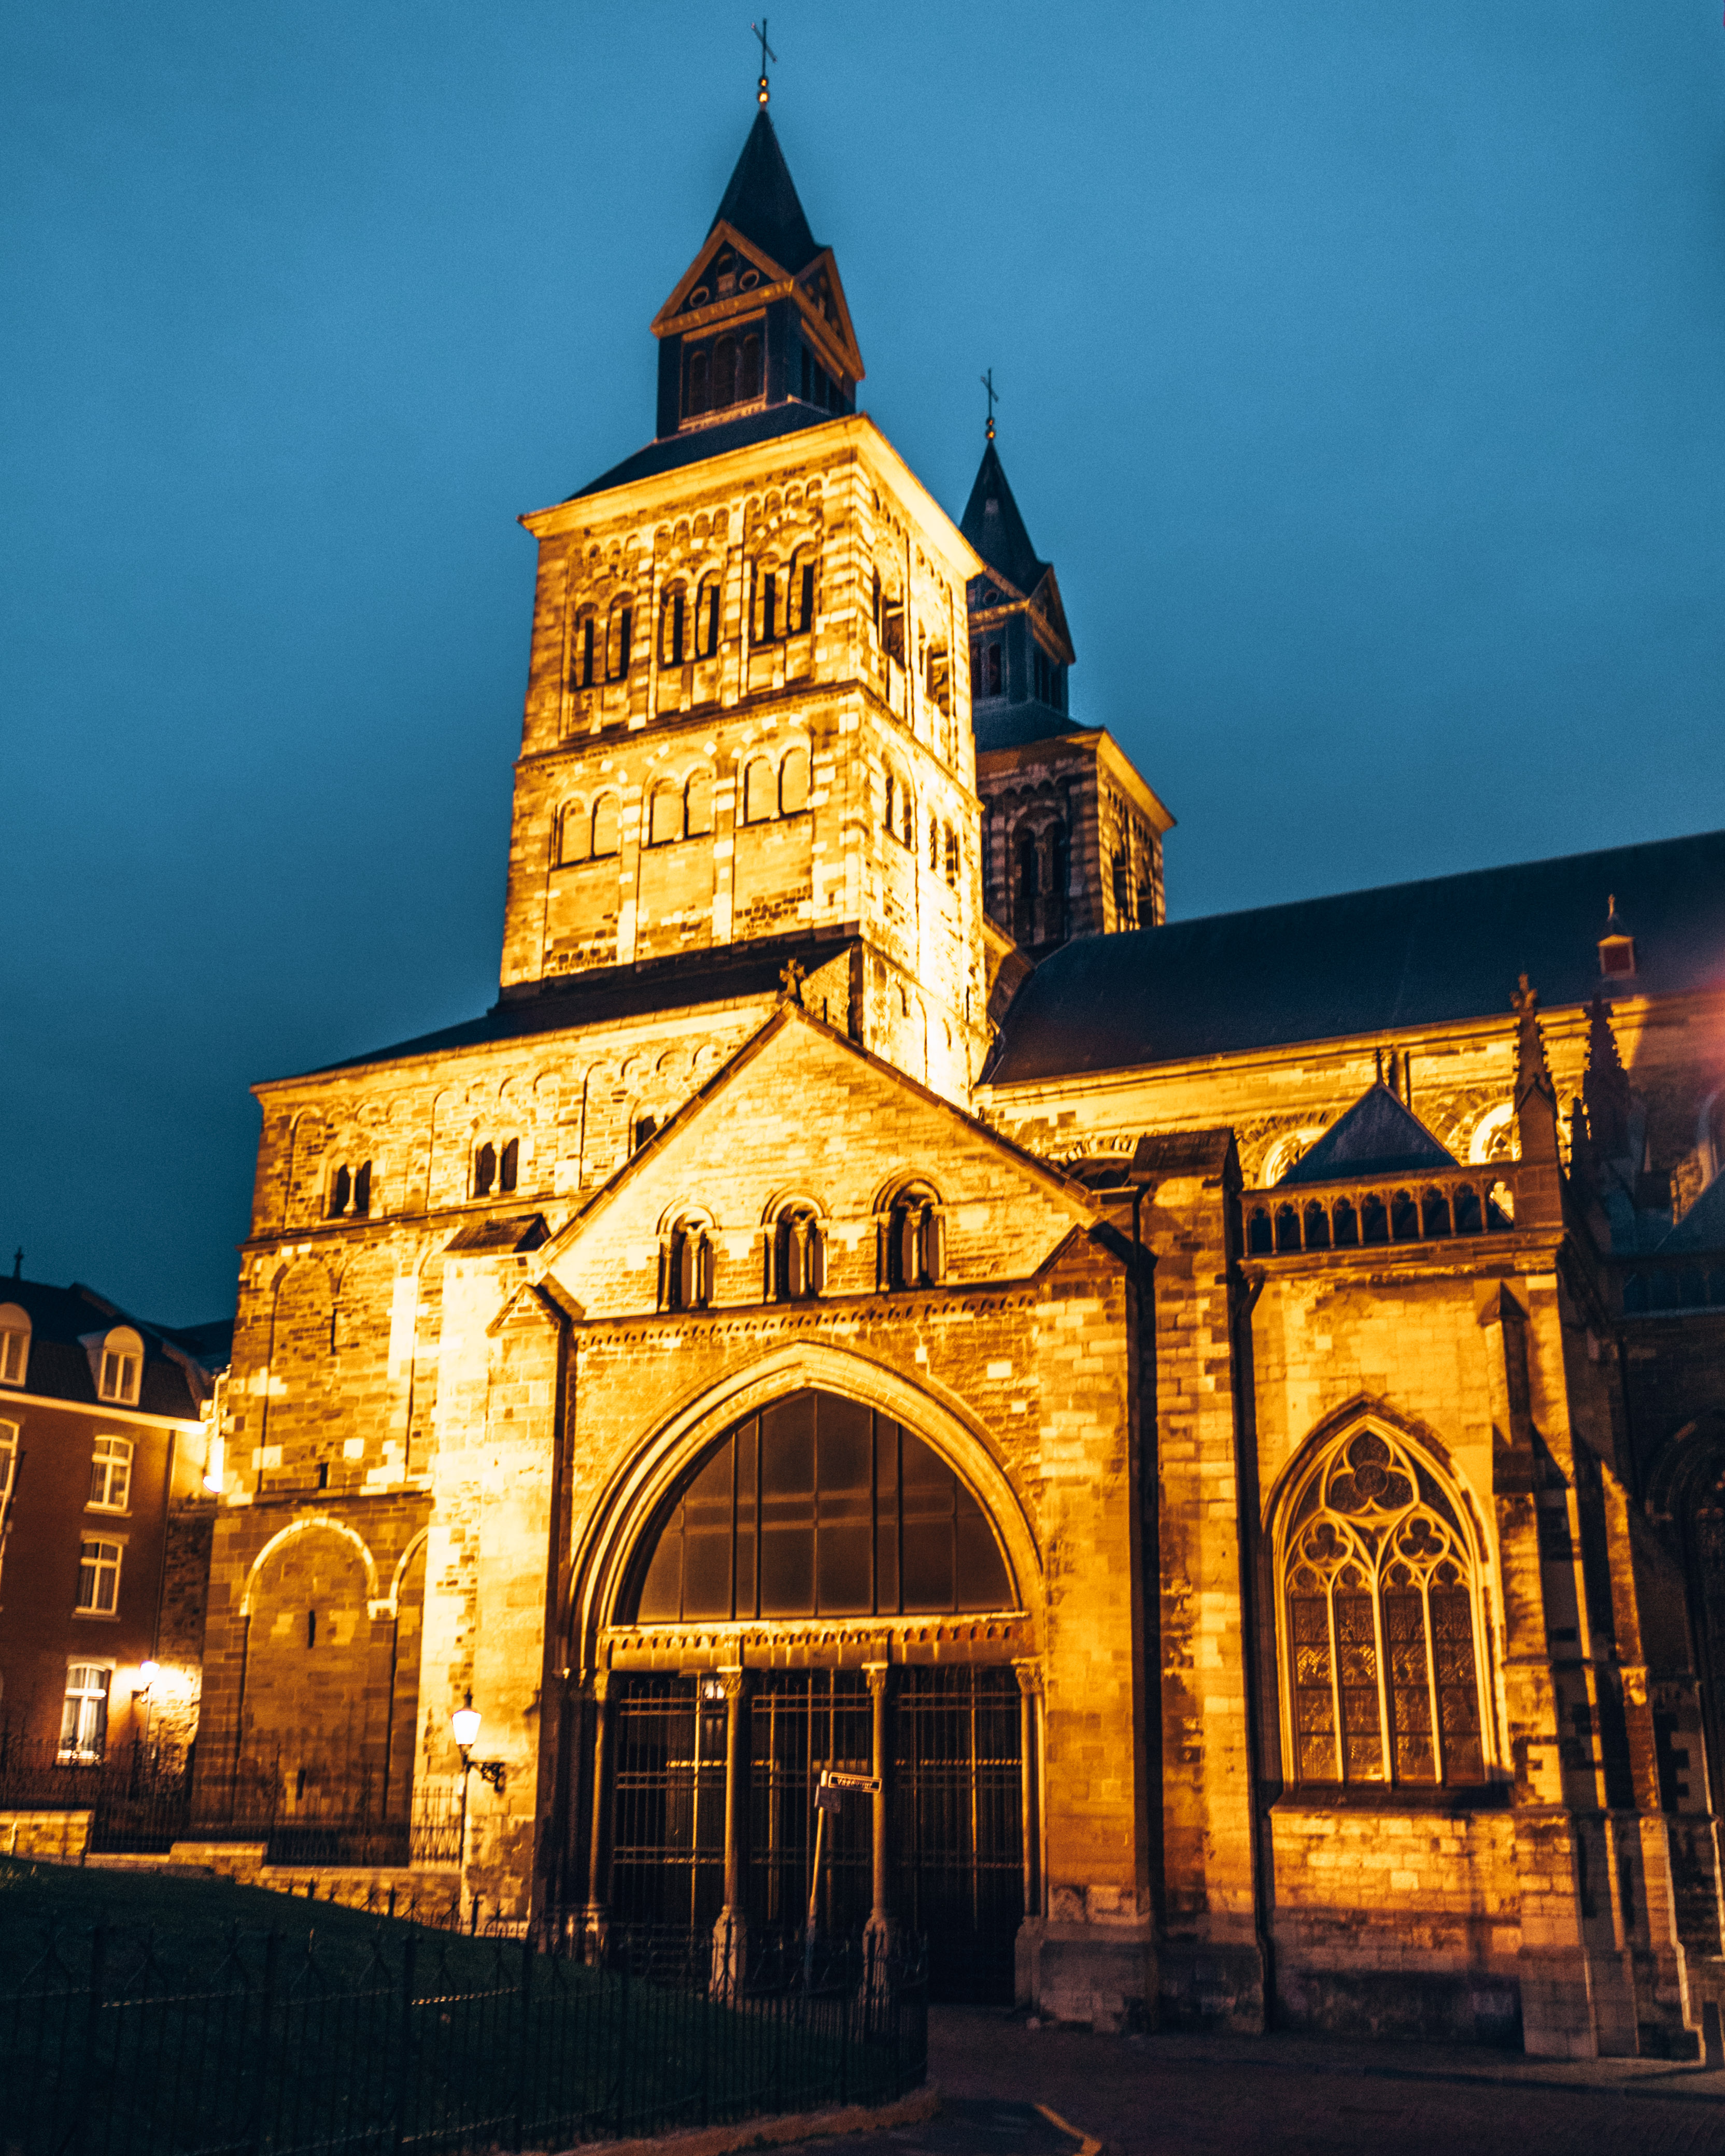 The Basilica of Saint Servatius in Maastricht, Netherlands